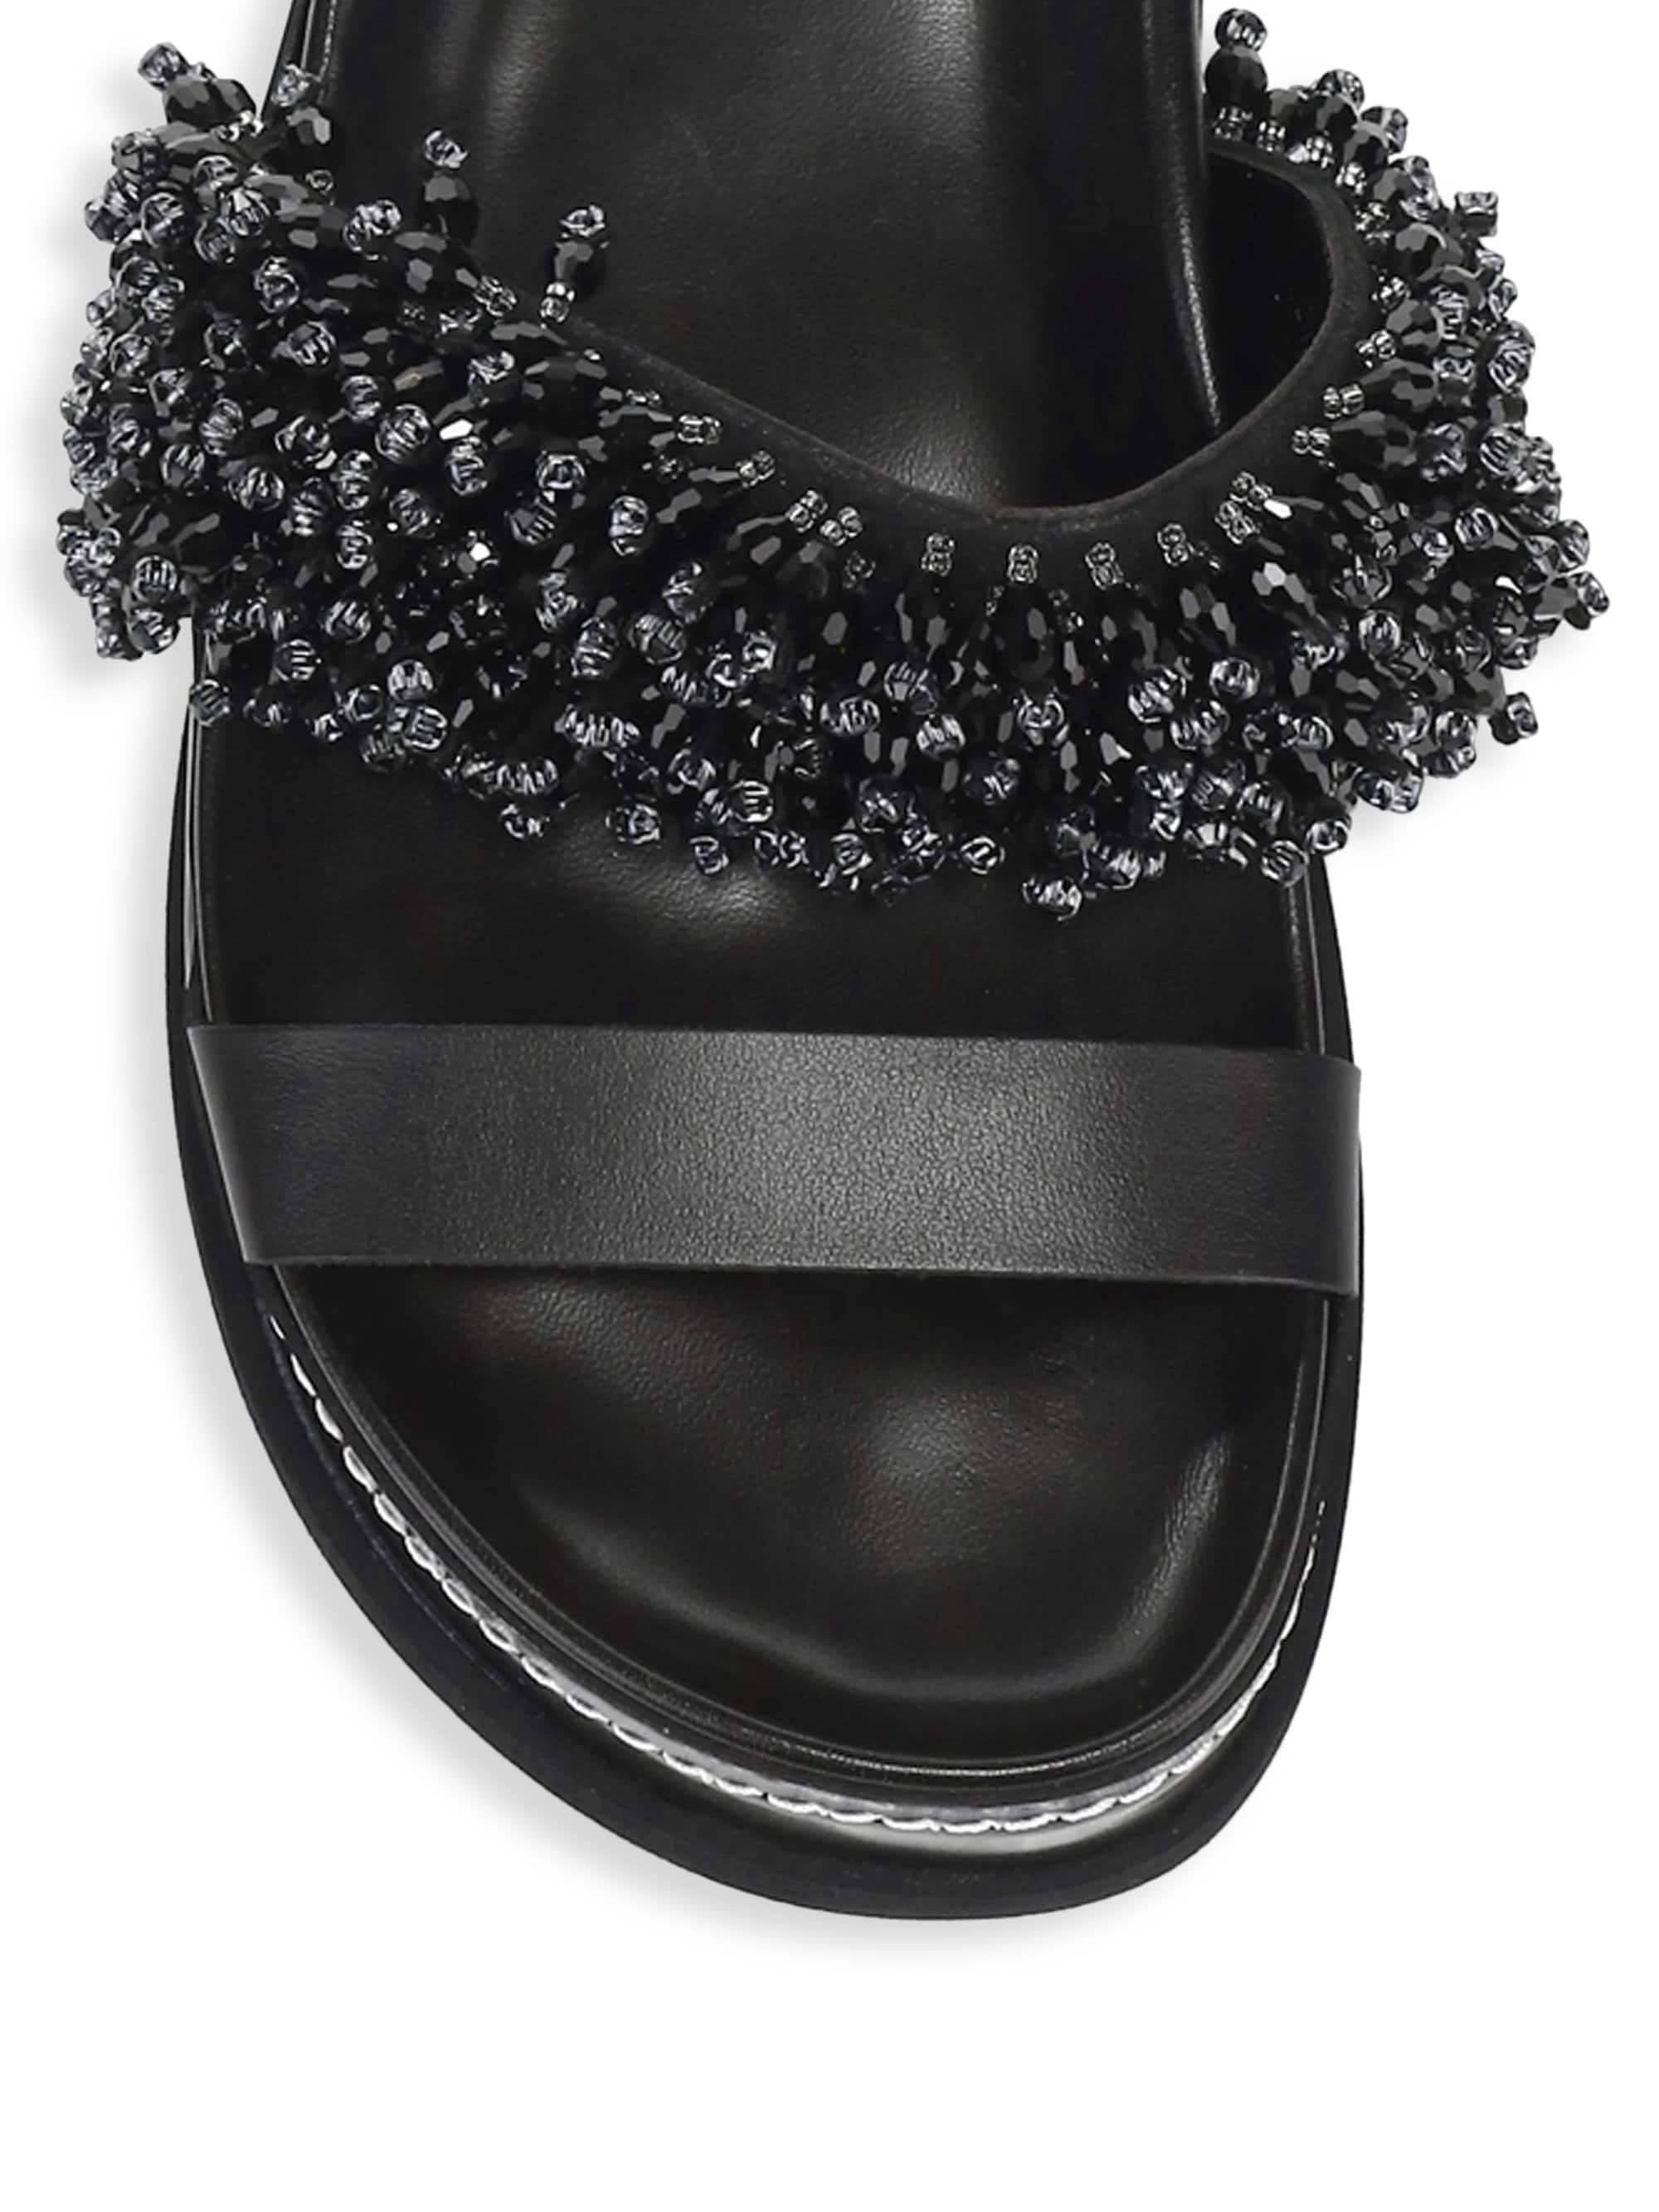 306286d3fcc0c1 Lyst - 3.1 Phillip Lim Freida Beaded Platform Slides in Black